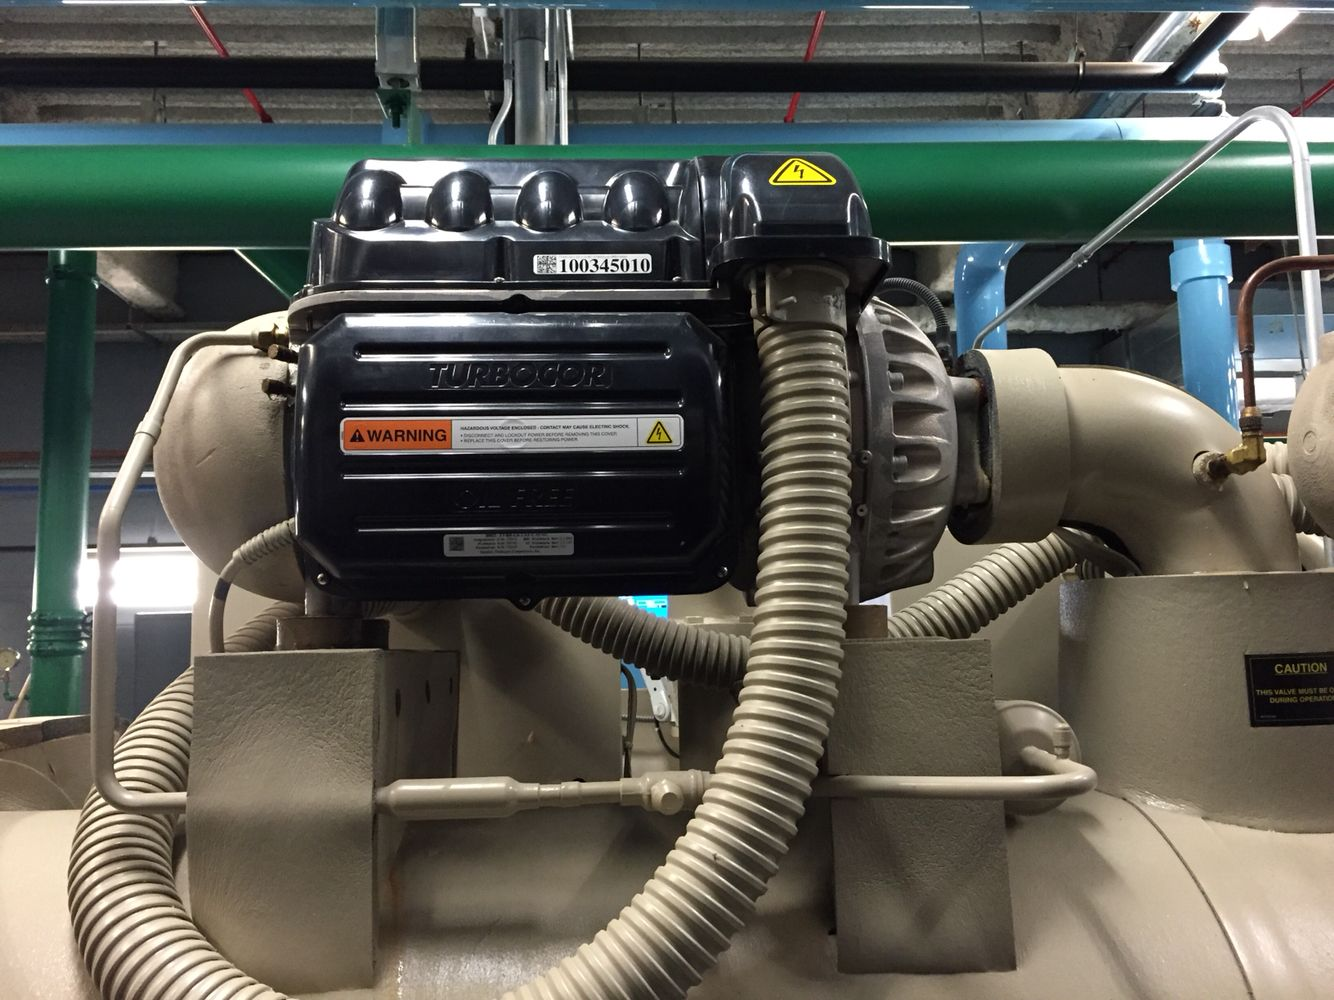 e7fbf22c40bfa1b3148283b20fd0c8c4 8 best centrifugal chillers images on pinterest conditioning  at nearapp.co